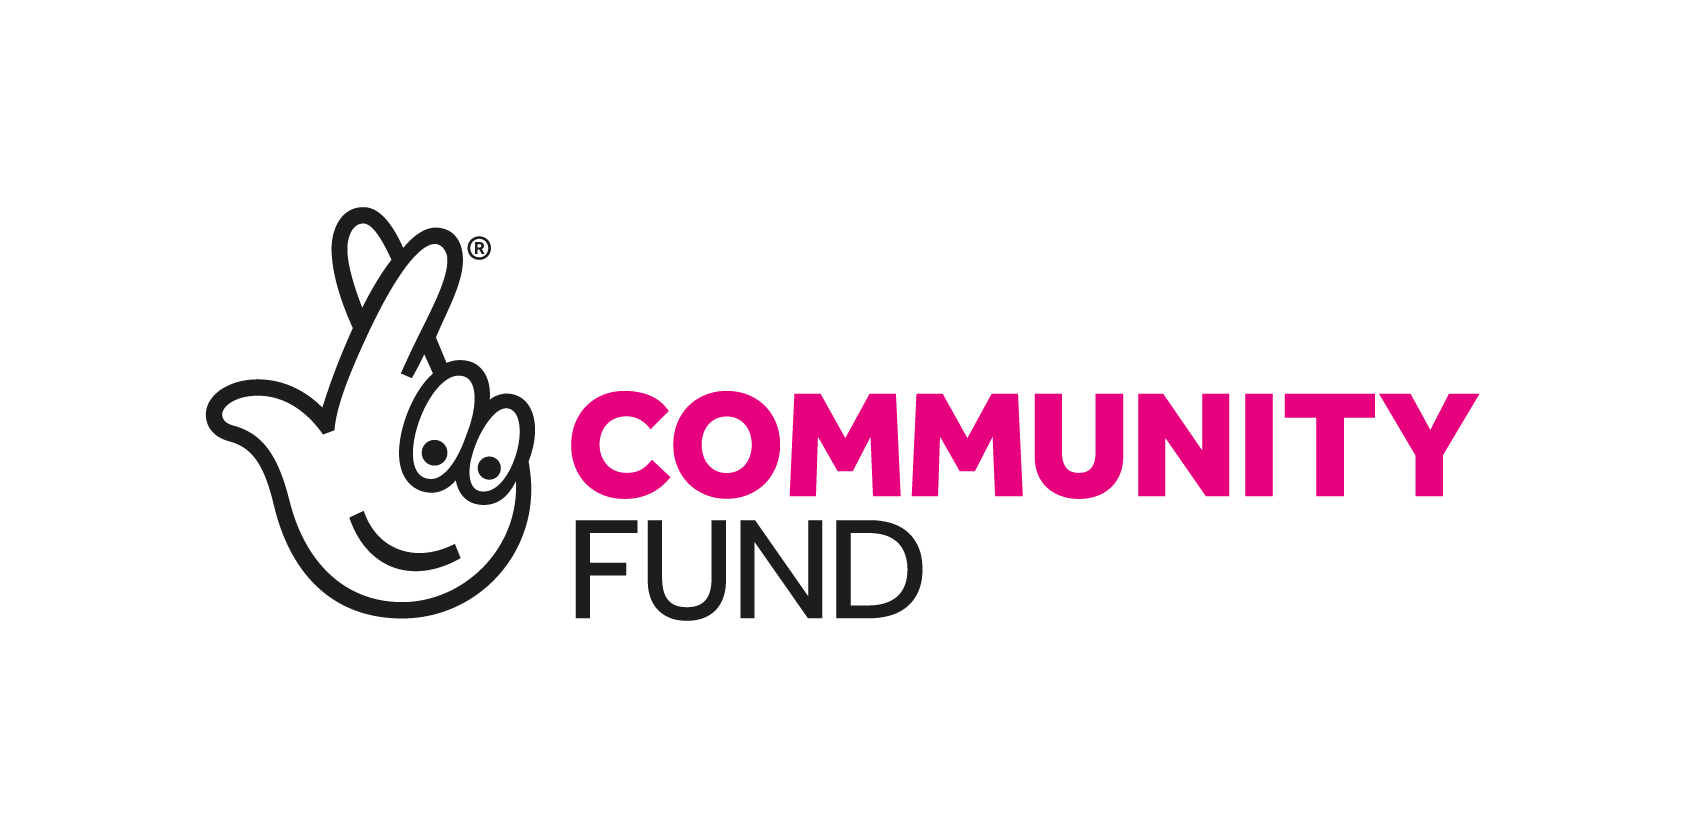 https://d1ssu070pg2v9i.cloudfront.net/pex/dfc_community/2020/06/24121502/Lottery-Community-Fund-Logo.png